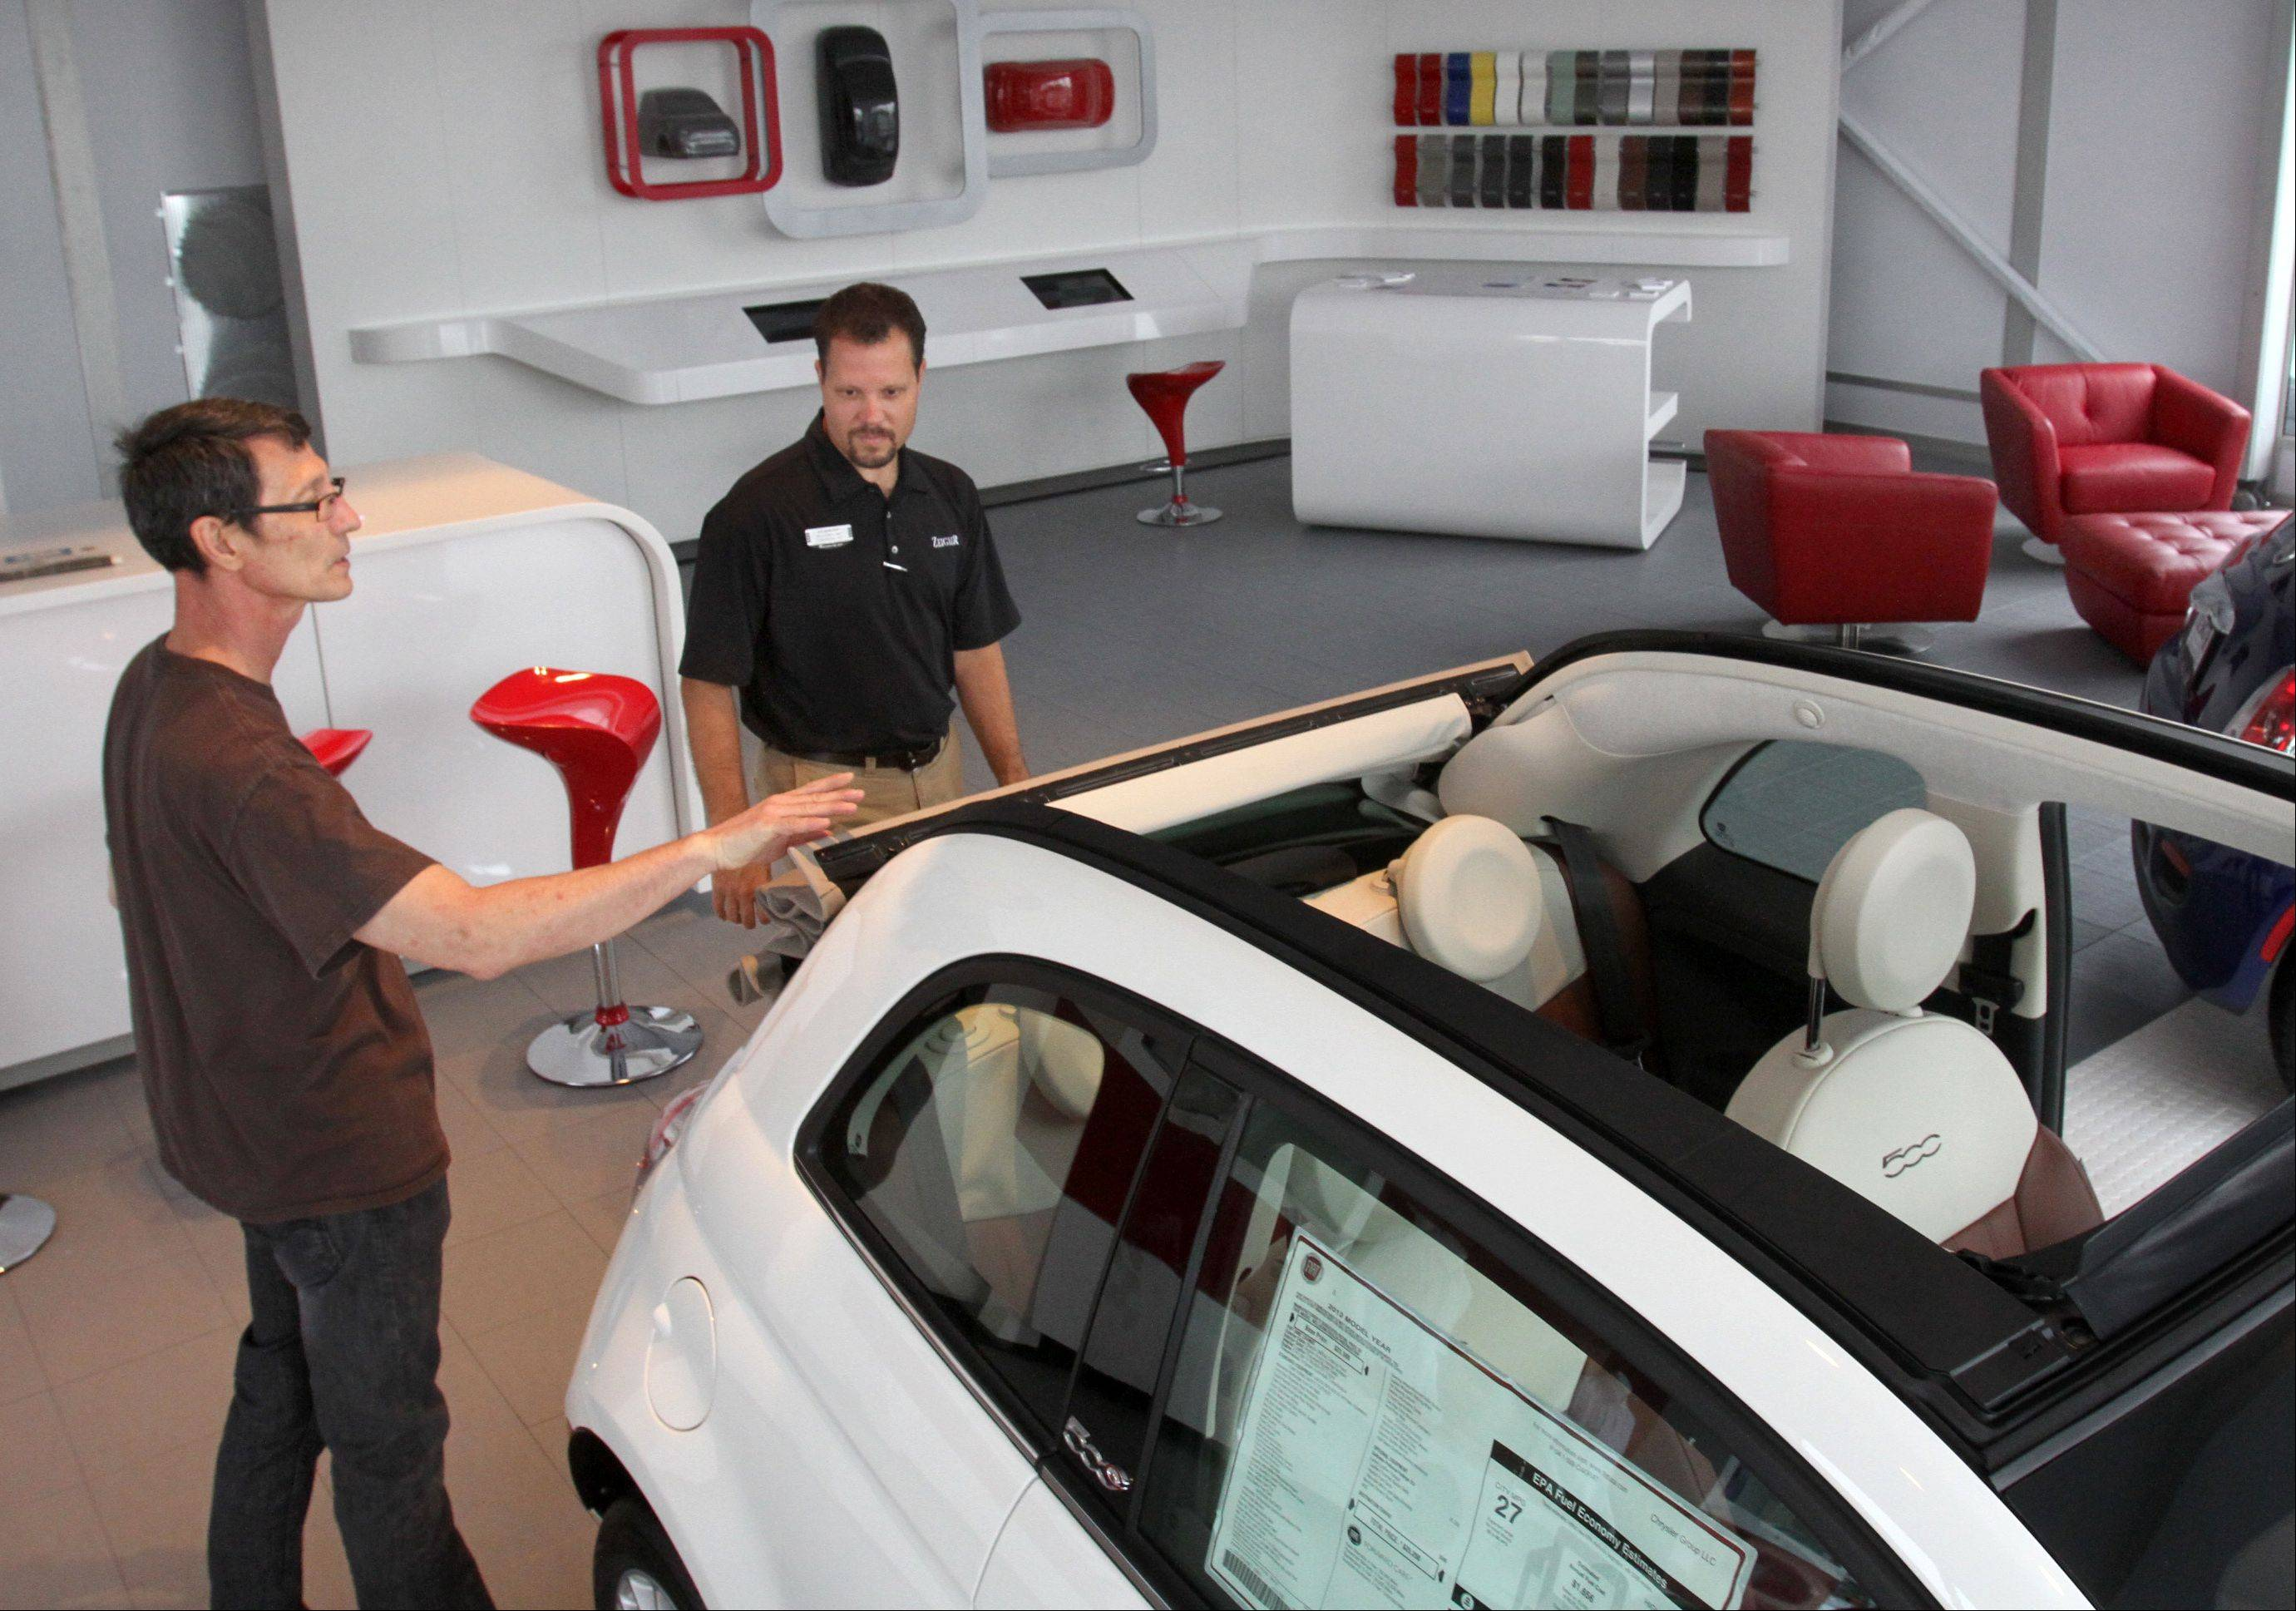 Jeff Nemcher, sales associate at Zeigler Chrysler Dodge Jeep, shows Wesley Hawk of Bartlett the 2012 Fiat 500 Lounge car in the dealership's showroom in Schaumburg on Wednesday. The dealership was chosen to help reintroduce the Fiat brand to the U.S. market.